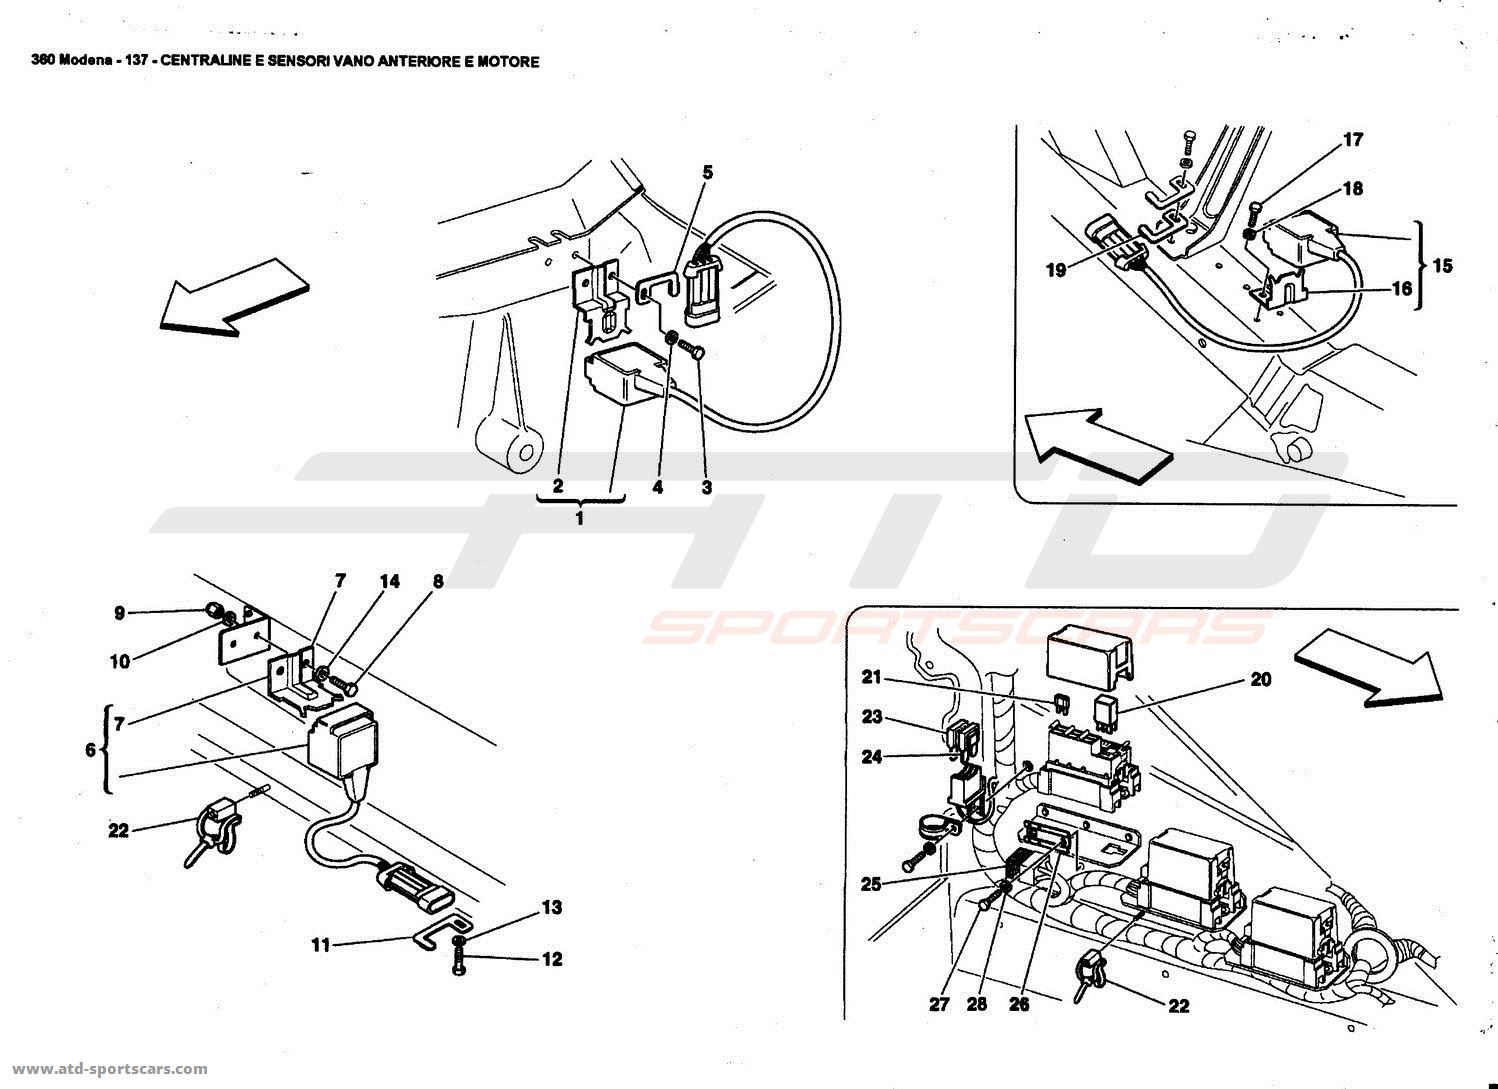 Ferrari 360 Modena Front And Motor Compartments Electrical Boards And Sensor Parts At Atd